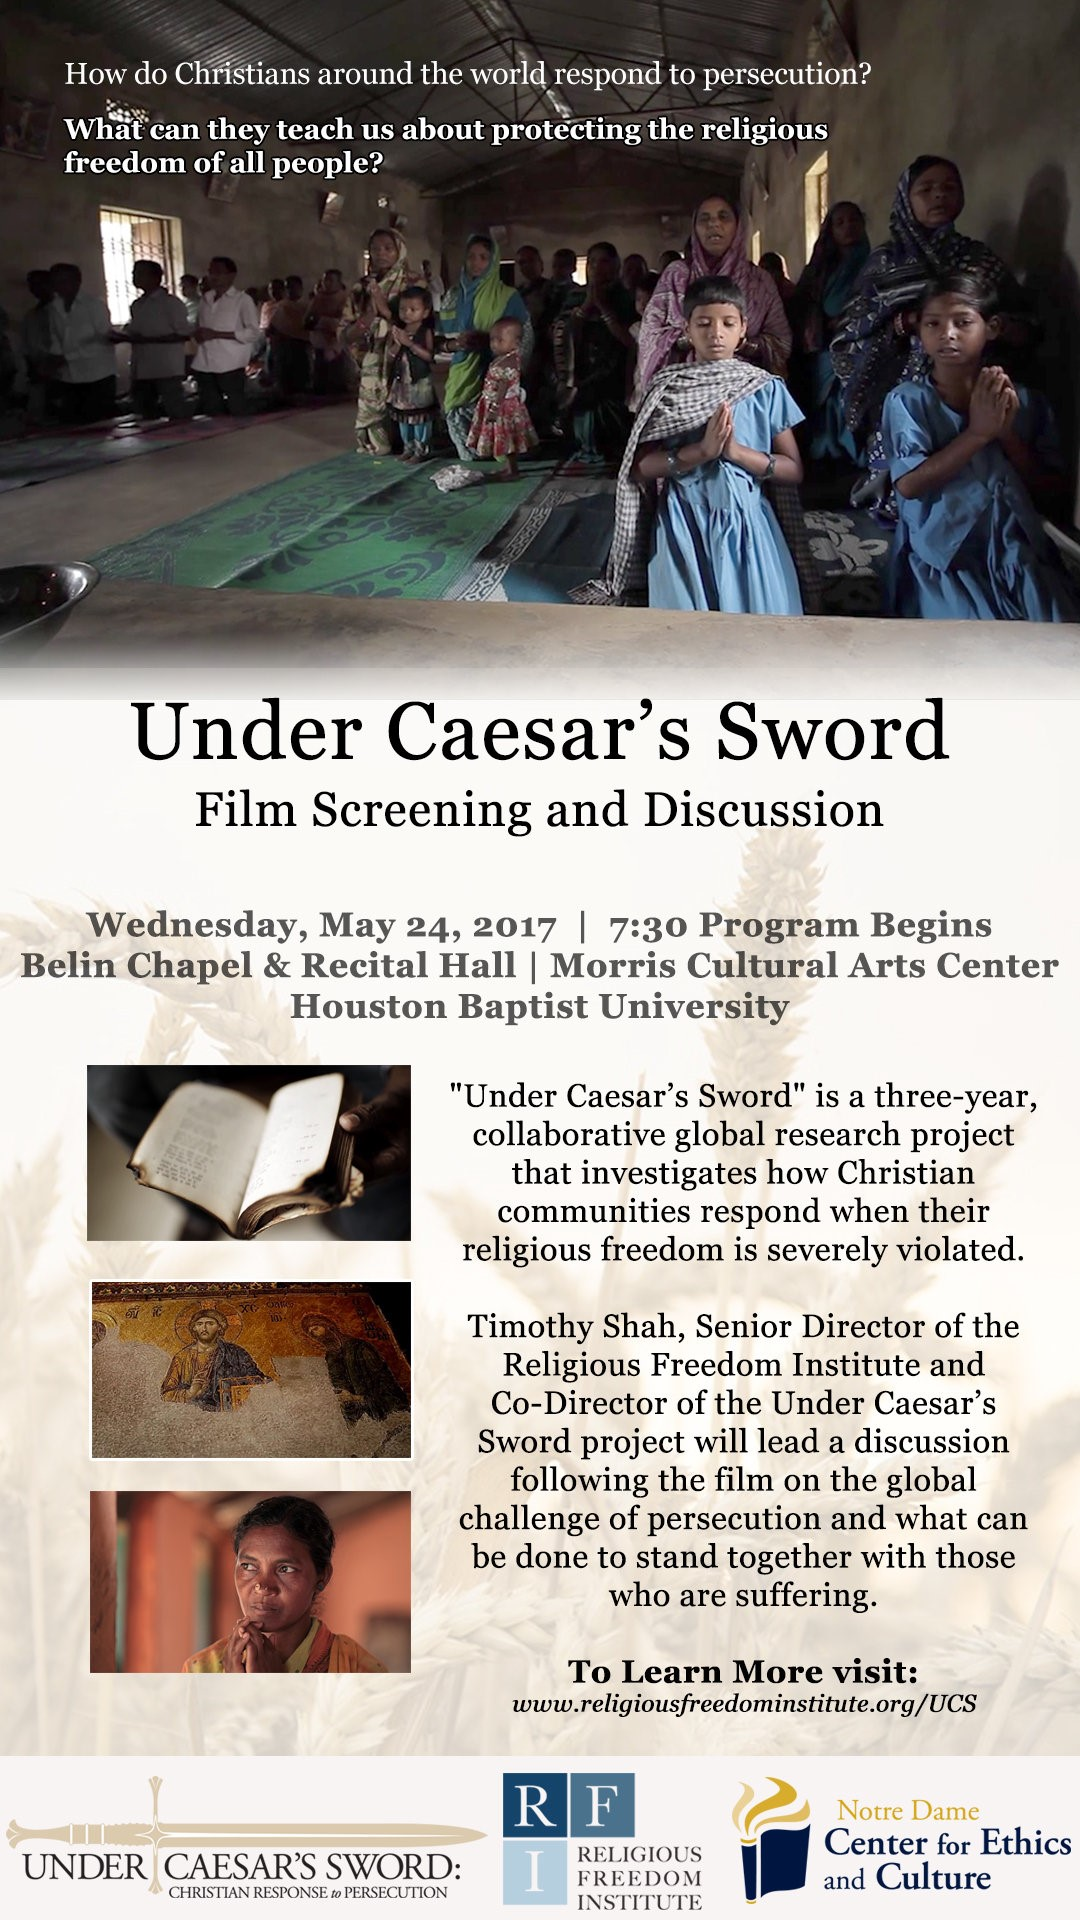 On May 24th, a special screening of the new documentary film